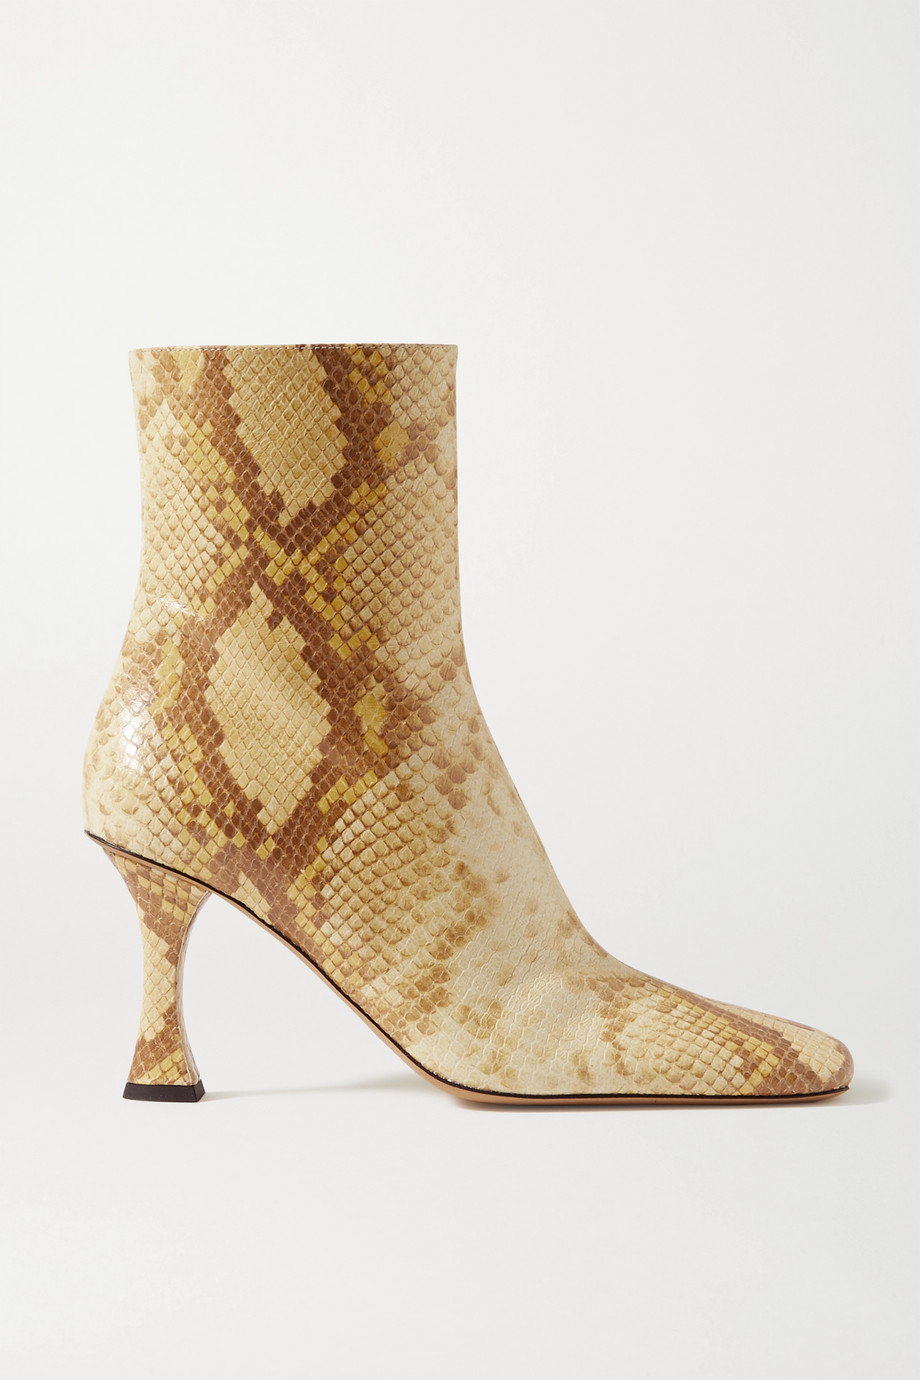 Proenza Schouler Snake-effect leather ankle boots